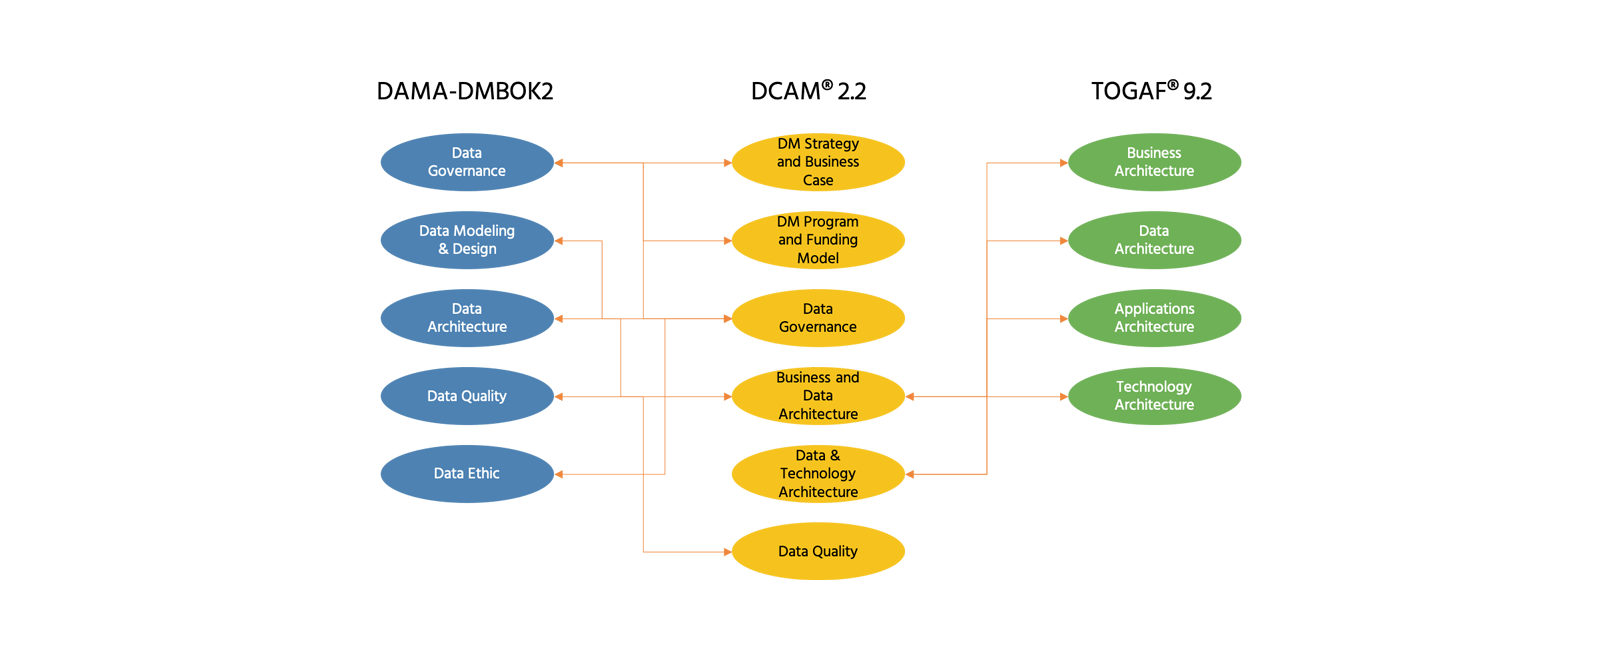 Dama-dmbok and dcam mapping